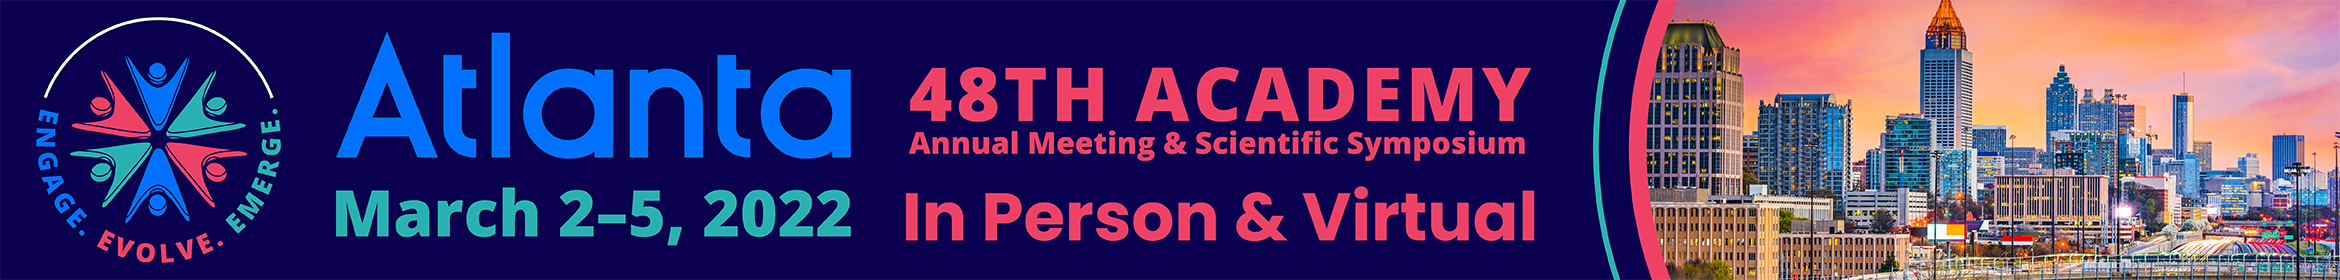 48th Academy Annual Meeting and Scientific Symposium Main banner